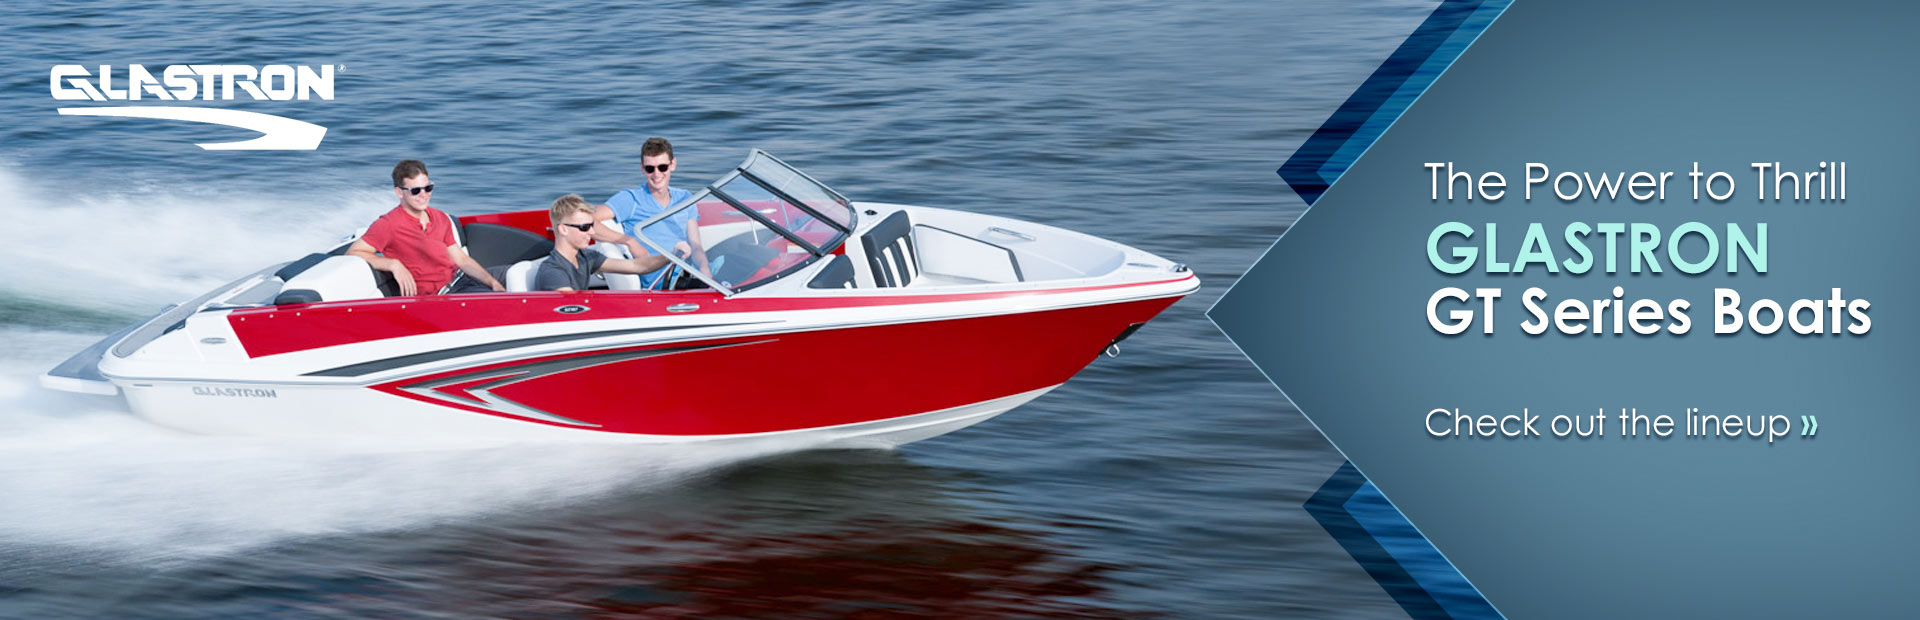 Glastron GT series boats possess the power to thrill. Click here to check out the lineup.